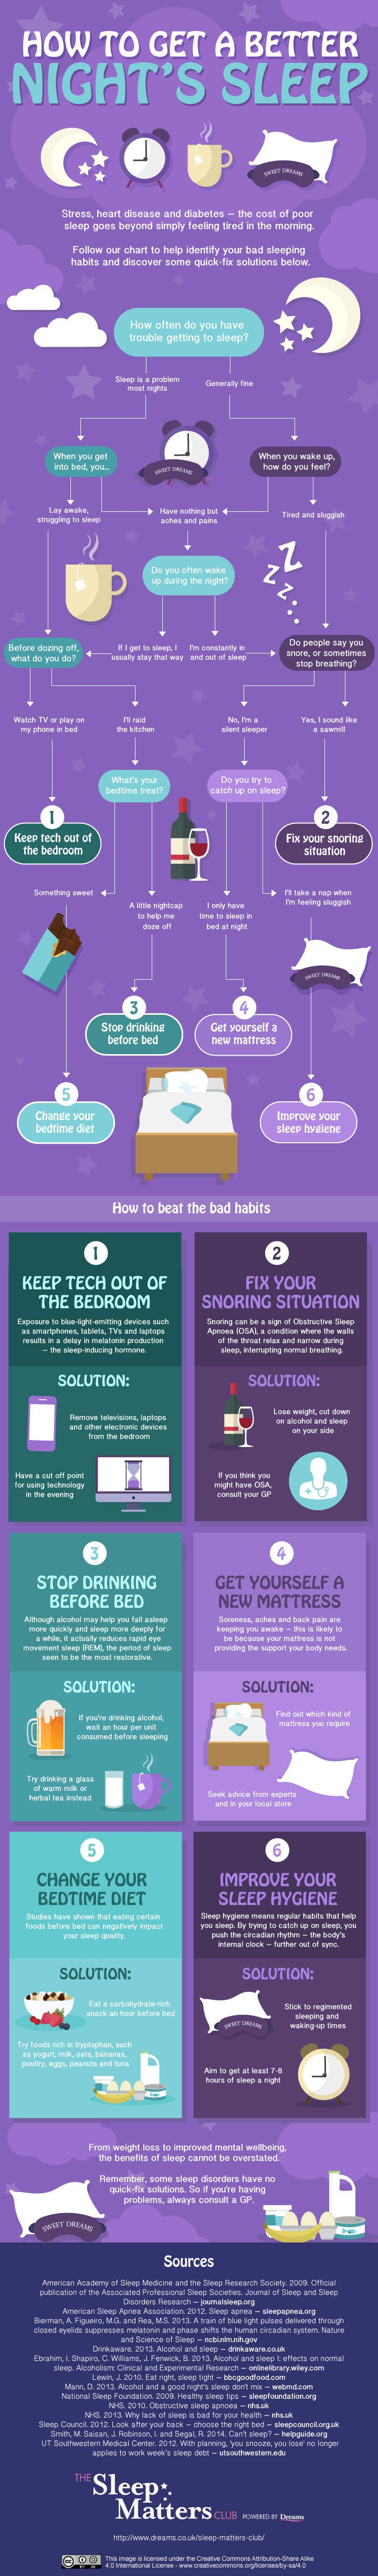 How to Get a Better Night's Sleep, an infographic flowchart from The Sleep Matters Club.